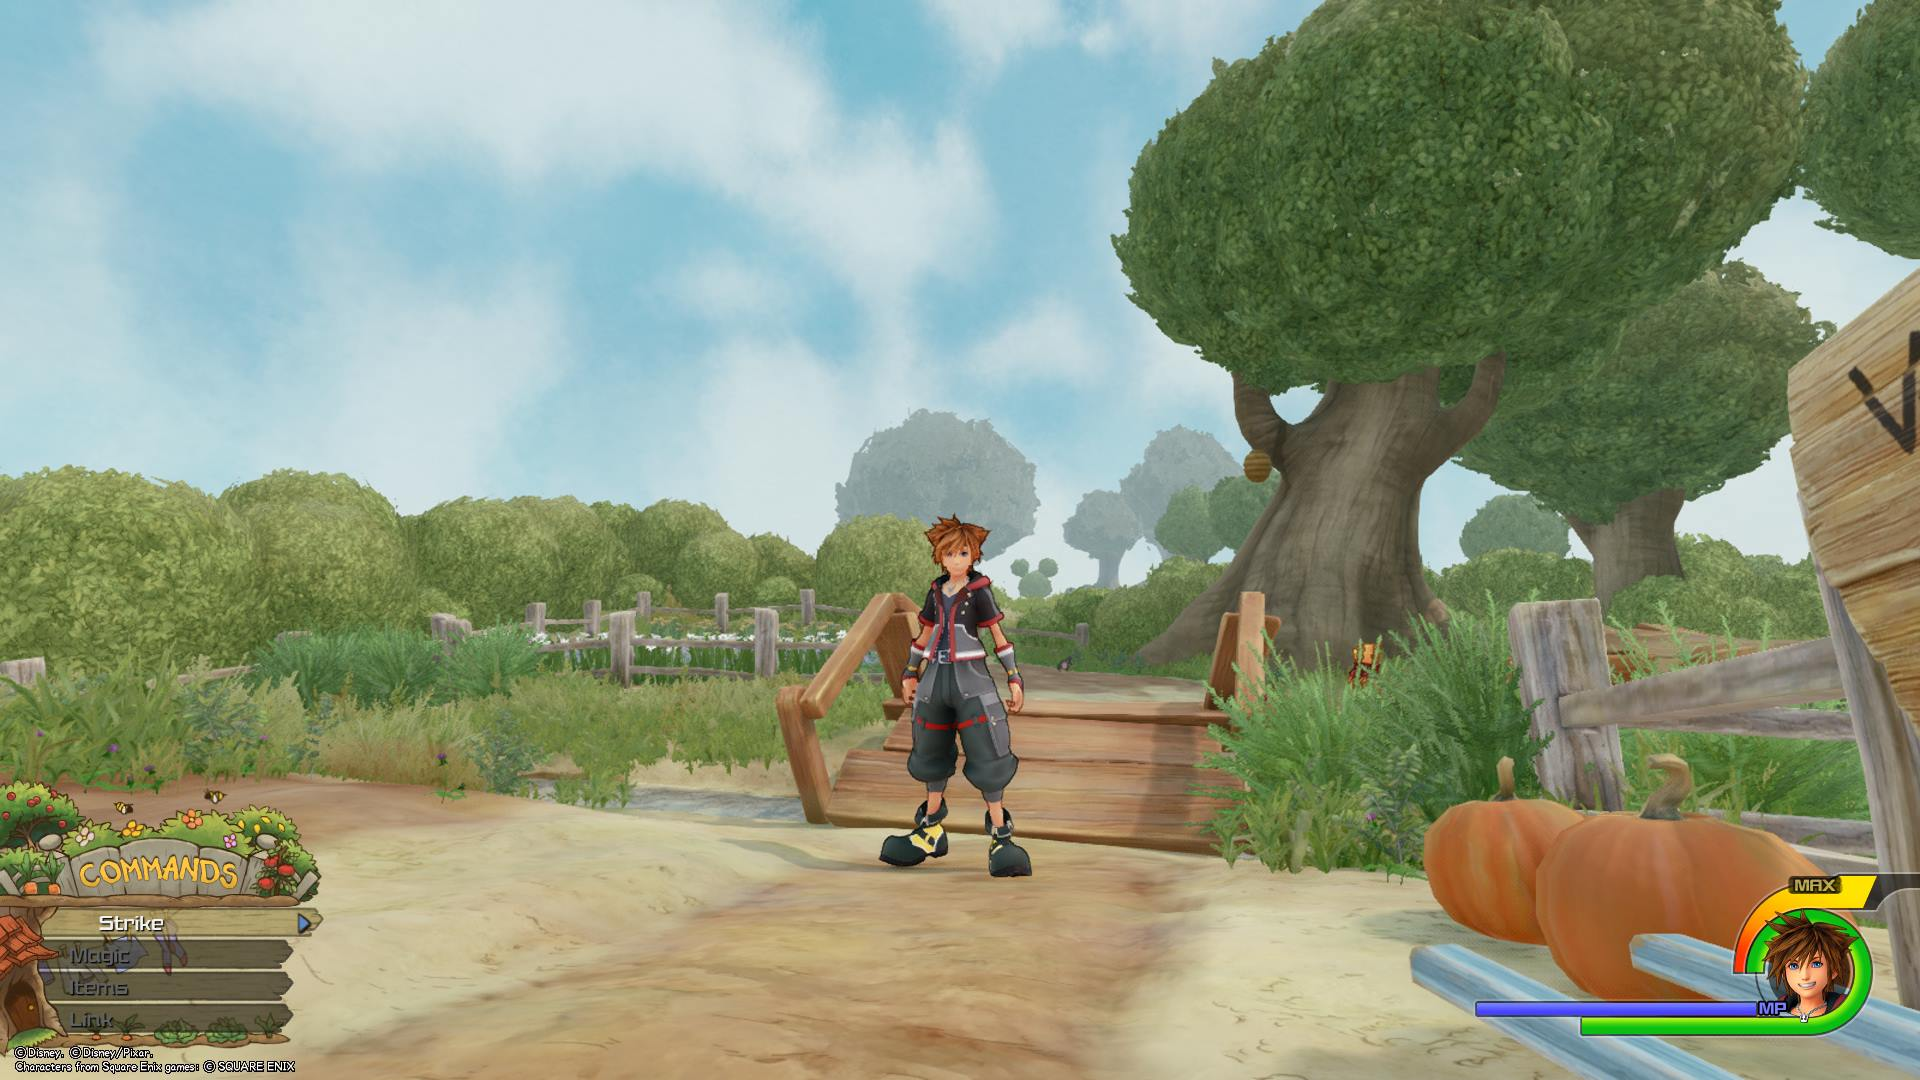 First 100 Acre Wood Lucky Emblem location in Kingdom Hearts 3